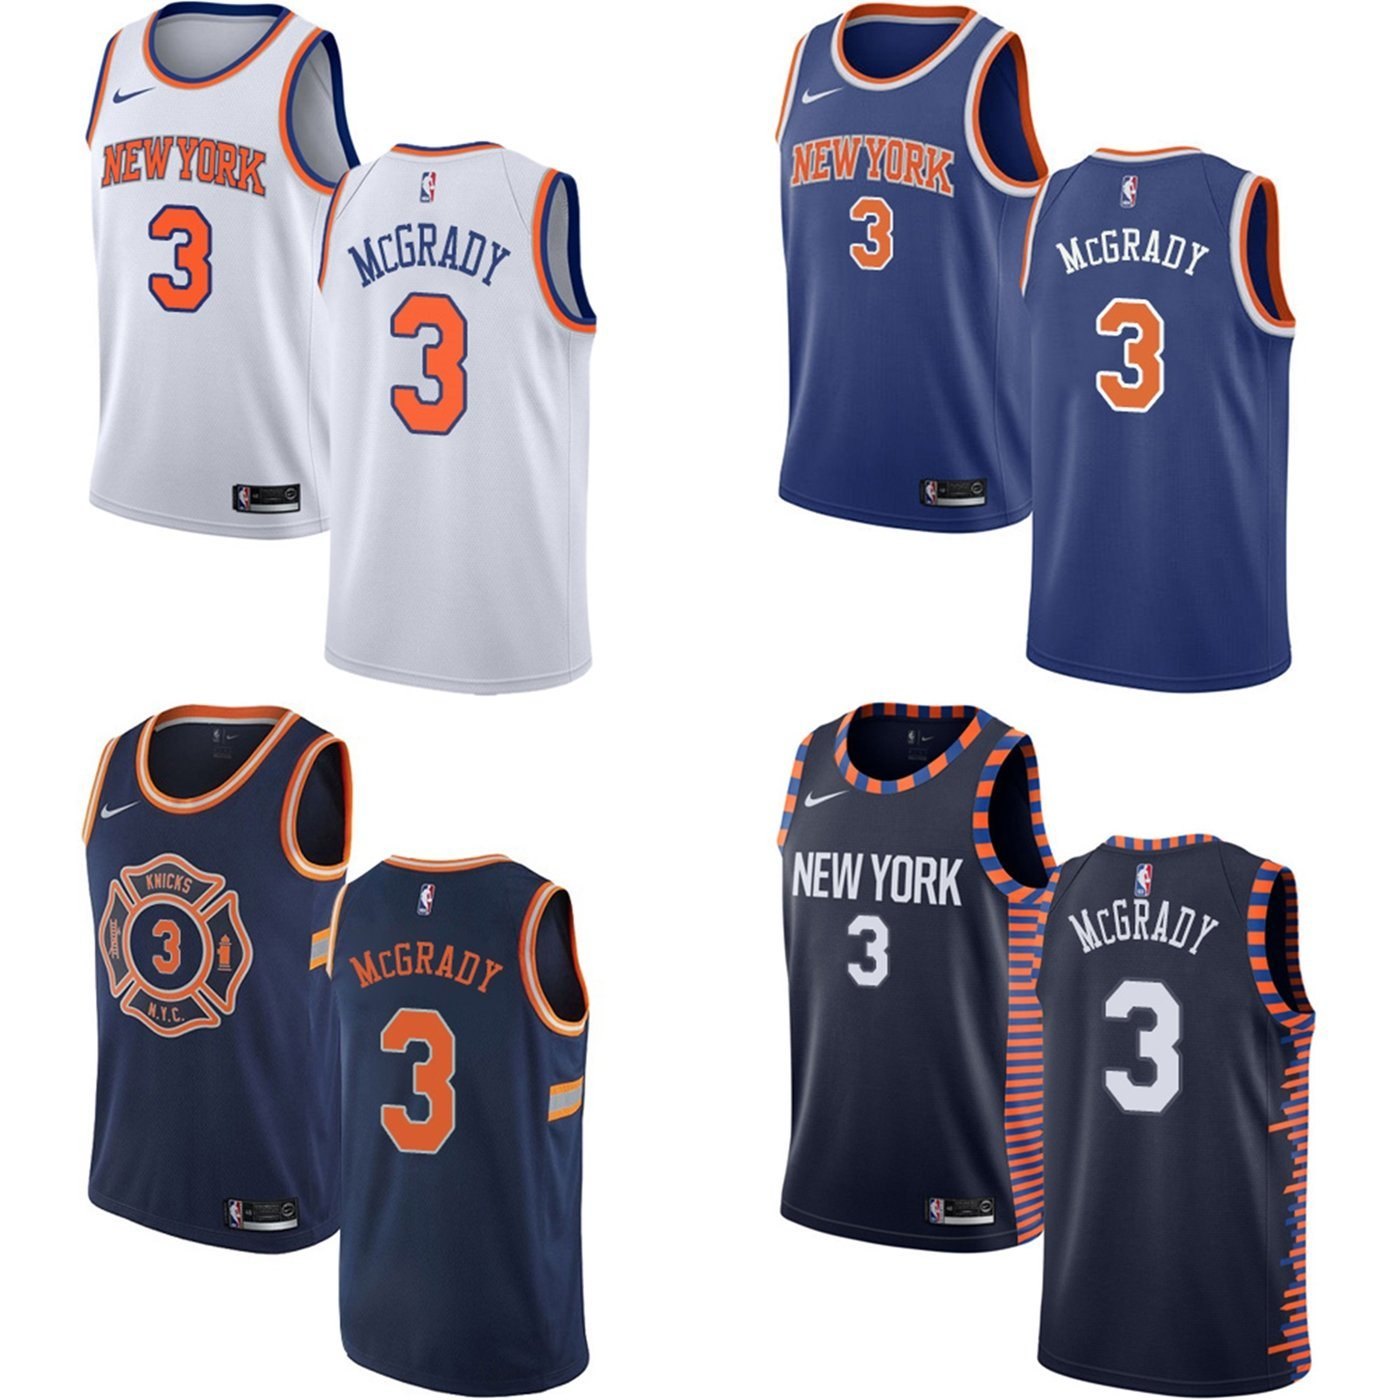 reputable site ad020 cb928 China 2019 Wholesale Tracy Mcgrady Knicks Home Away Third ...